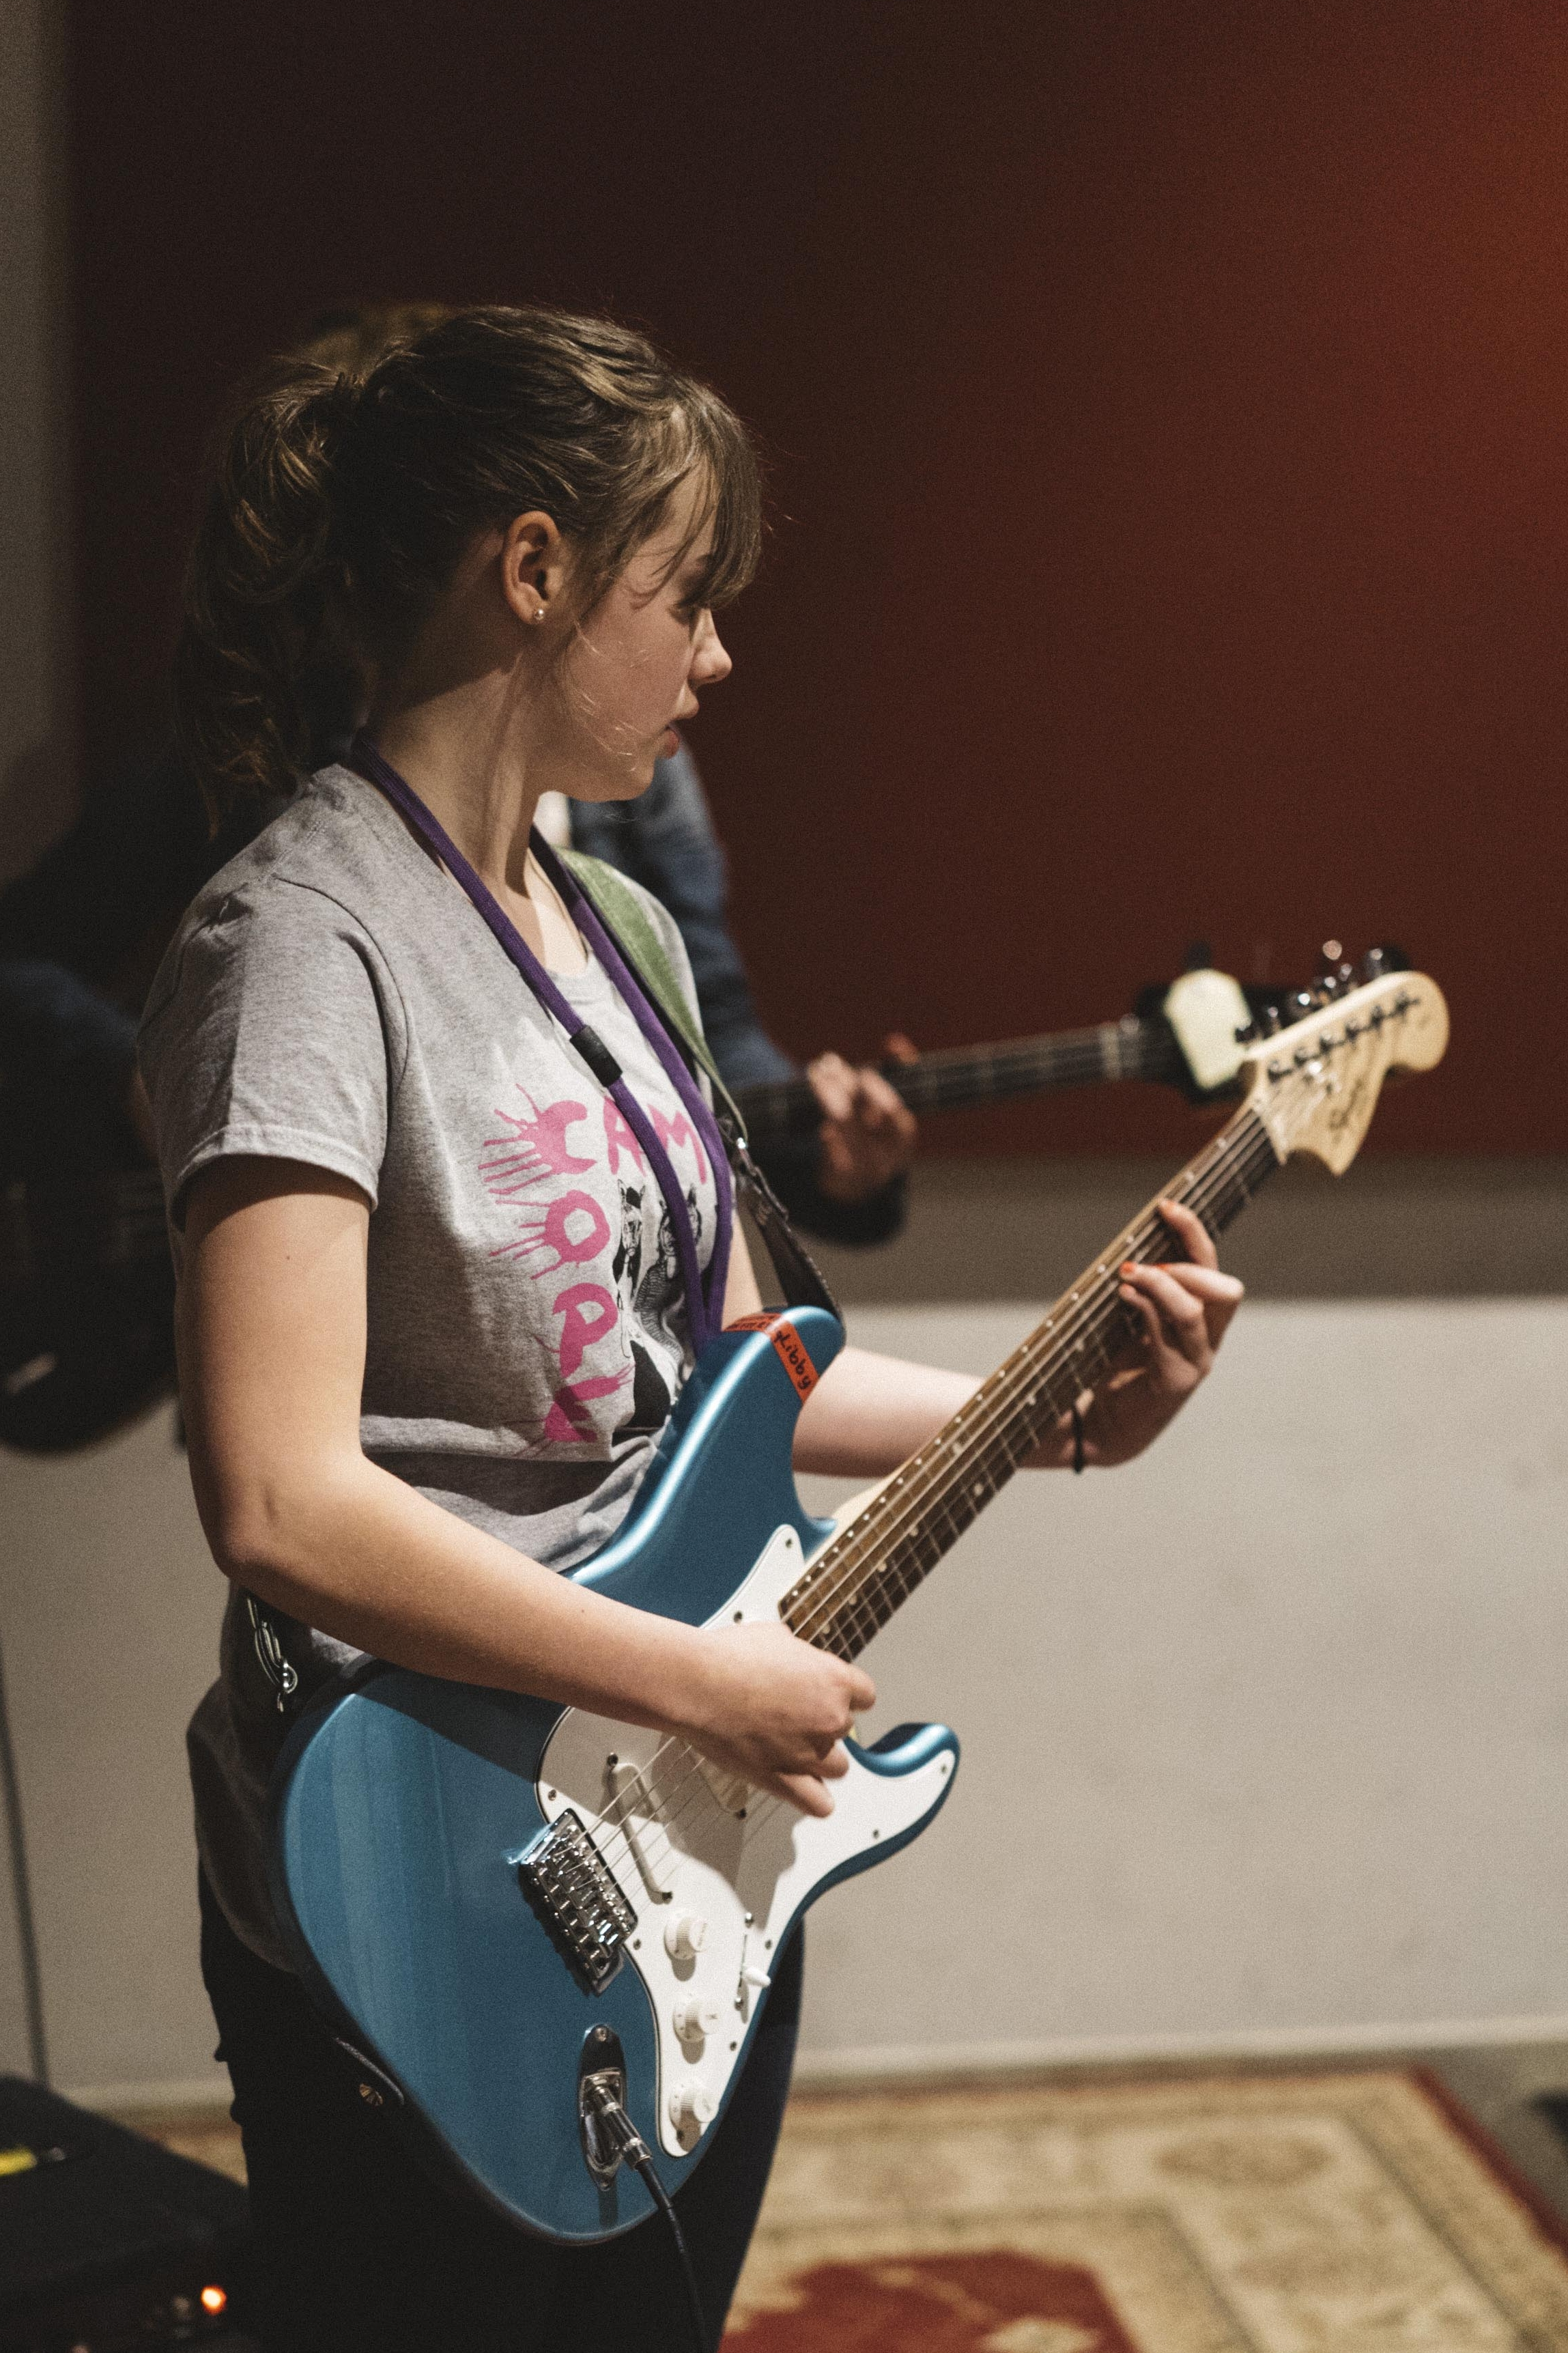 Our mission - Amplifying the voices of female, trans and gender diverse youth through music education and positive mentorship.